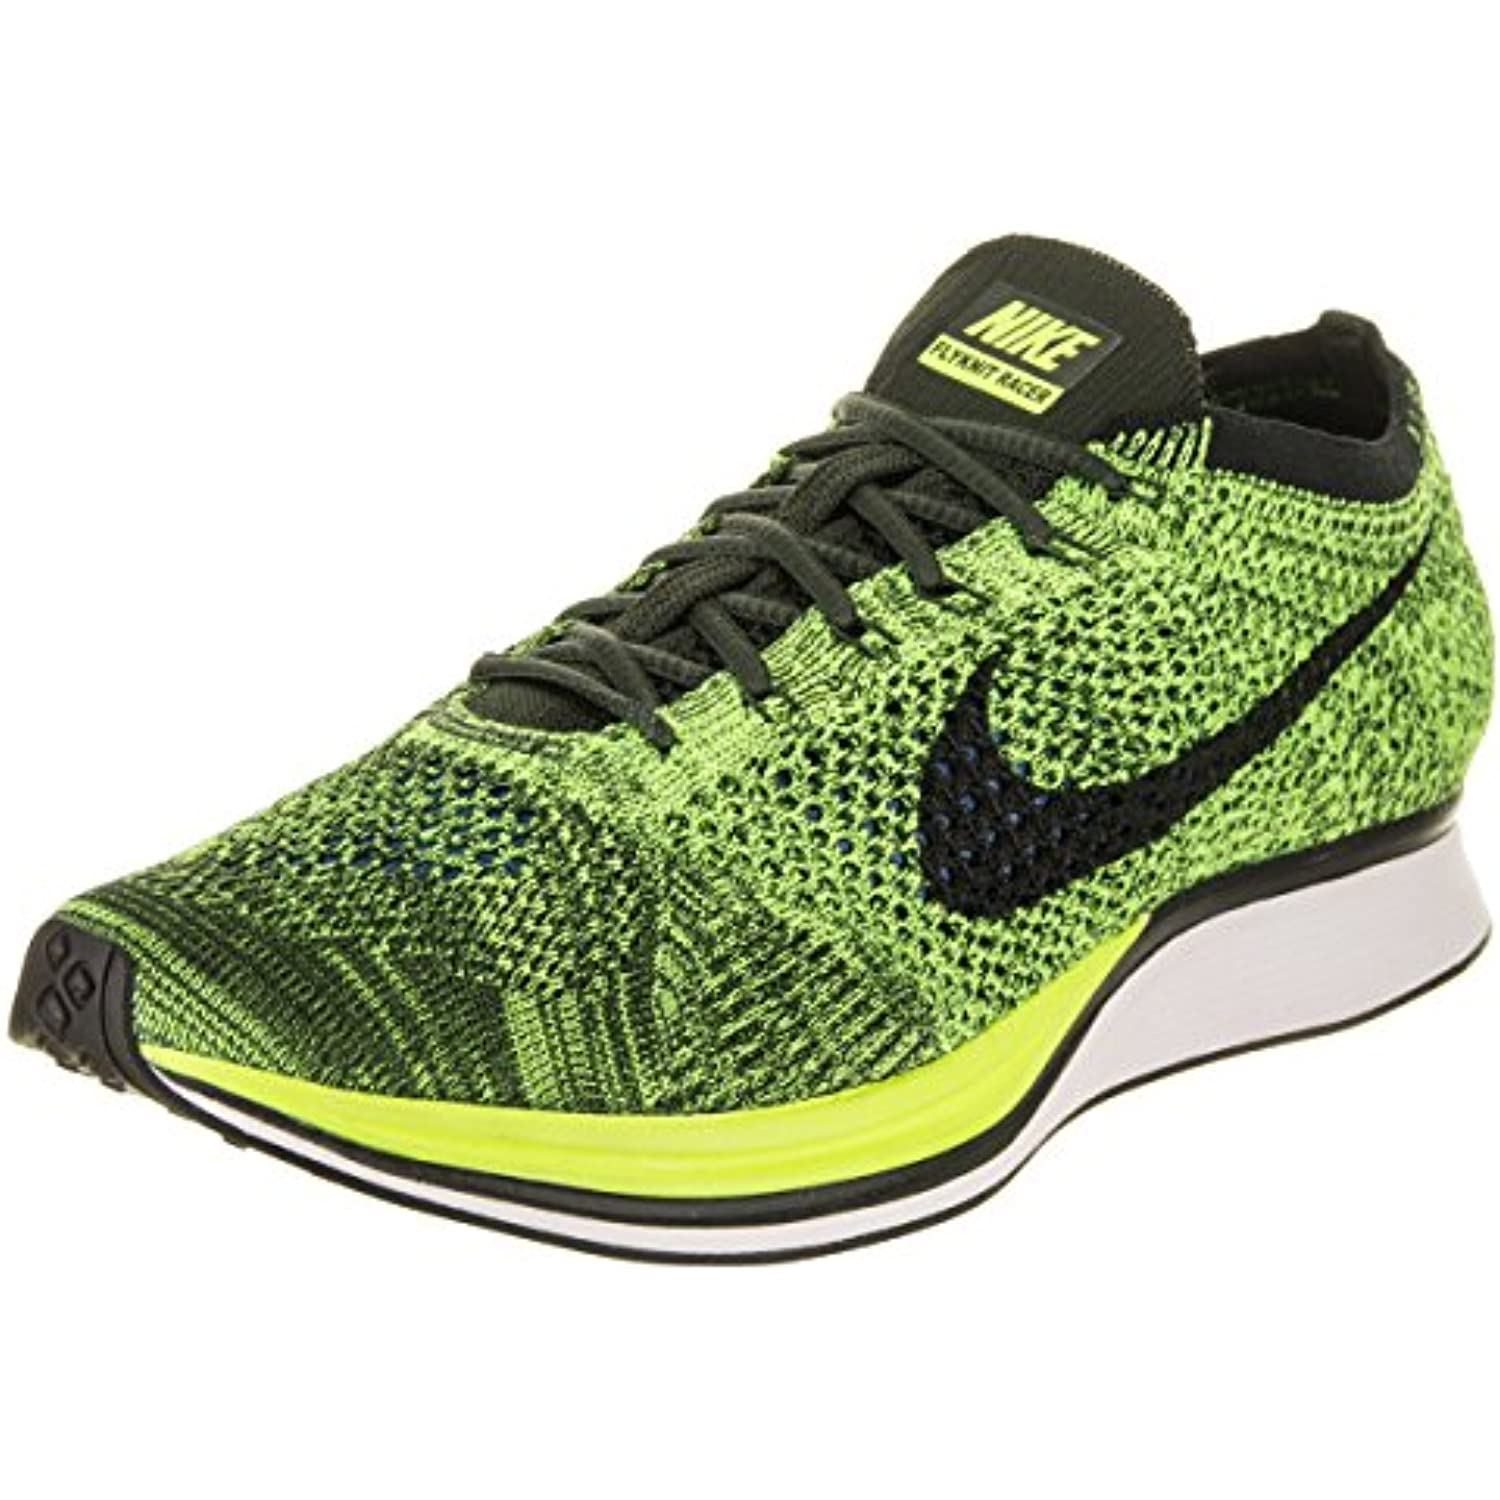 huge selection of 6c0b1 e6a71 NIKE Flyknit Racer, Chaussures de Running EntraineHommest Homme B01JJD6WFA  - - - 746515